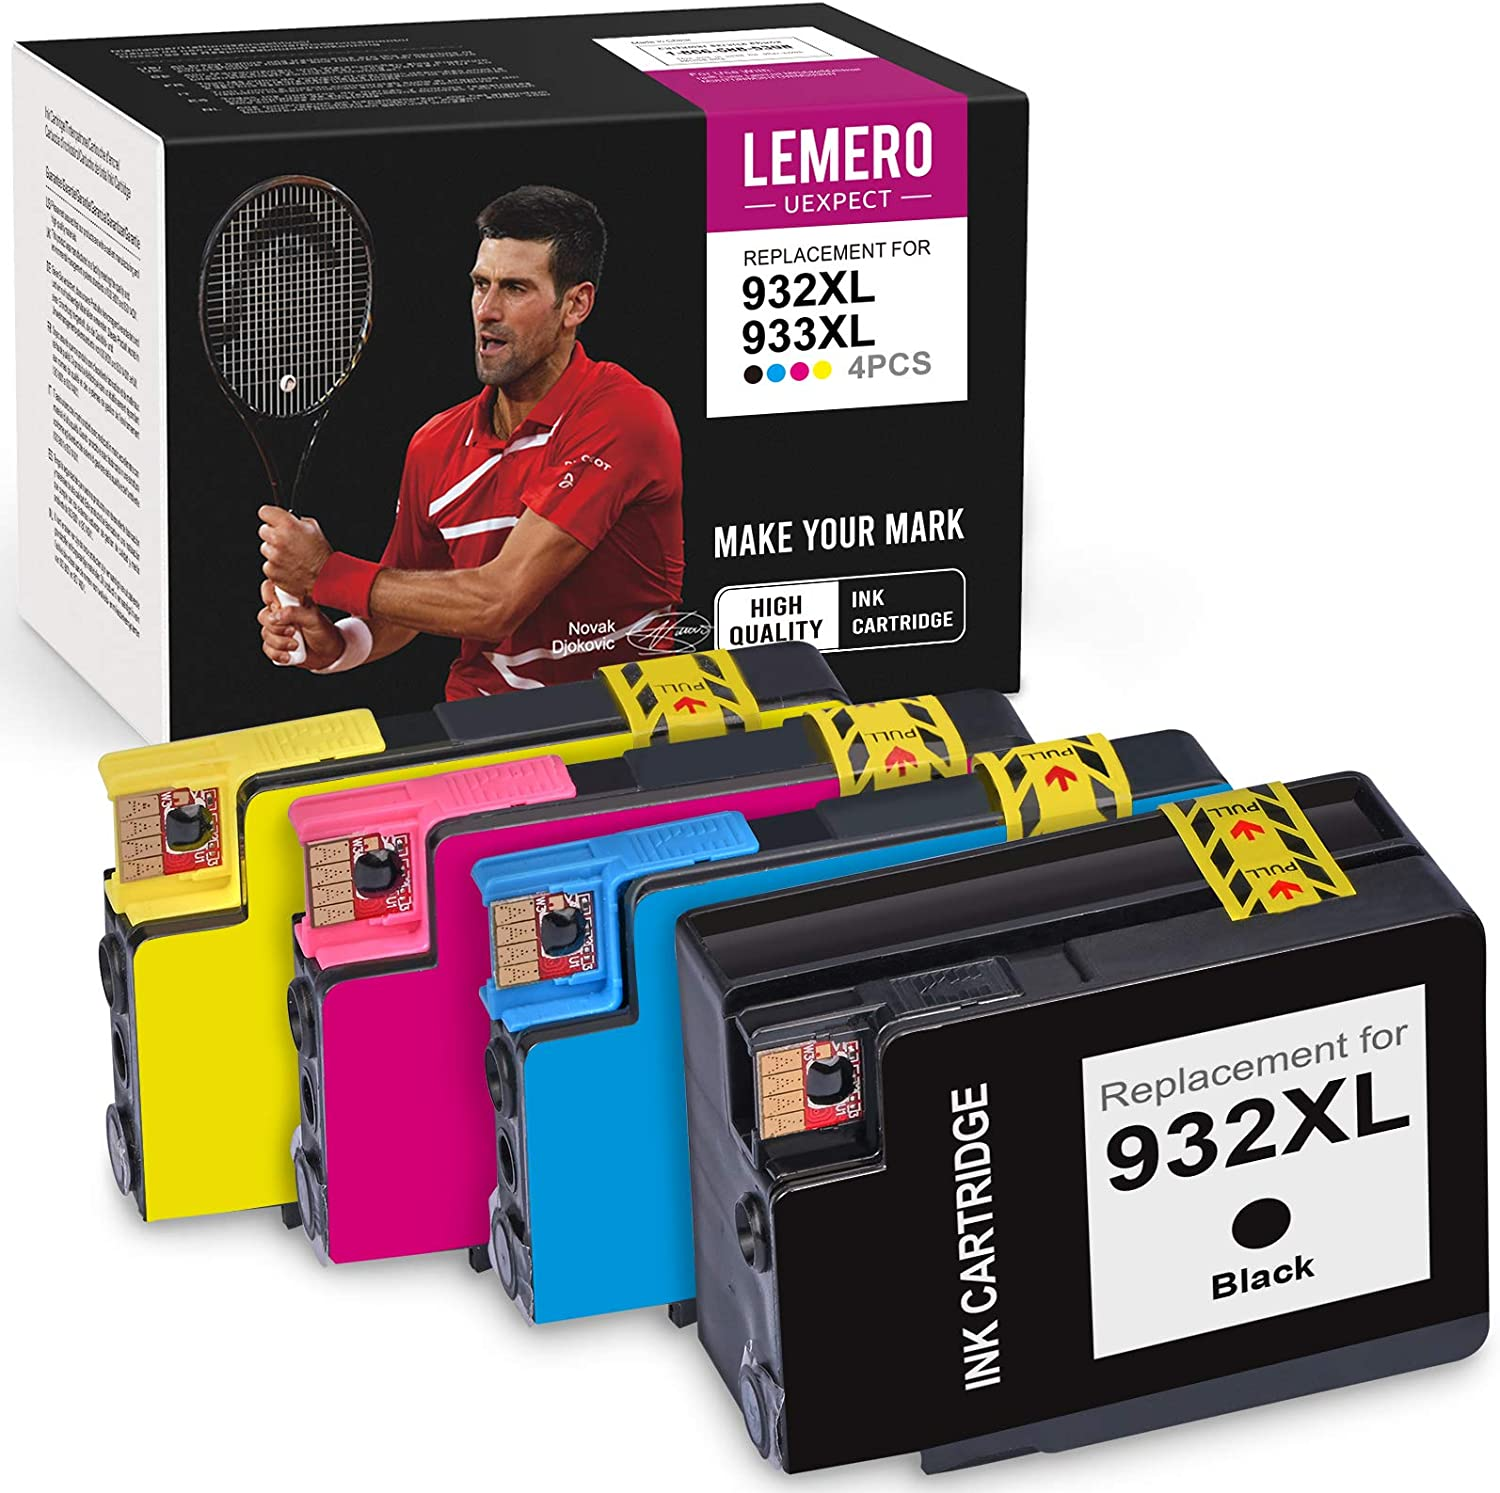 LemeroUexpect Compatible Ink Cartridge Replacement for HP 932XL 933XL 933 XL 932 XL for OfficeJet 6700 6600 7610 7612 6100 7100 (Black Cyan Magenta Yellow, 4 Pack)